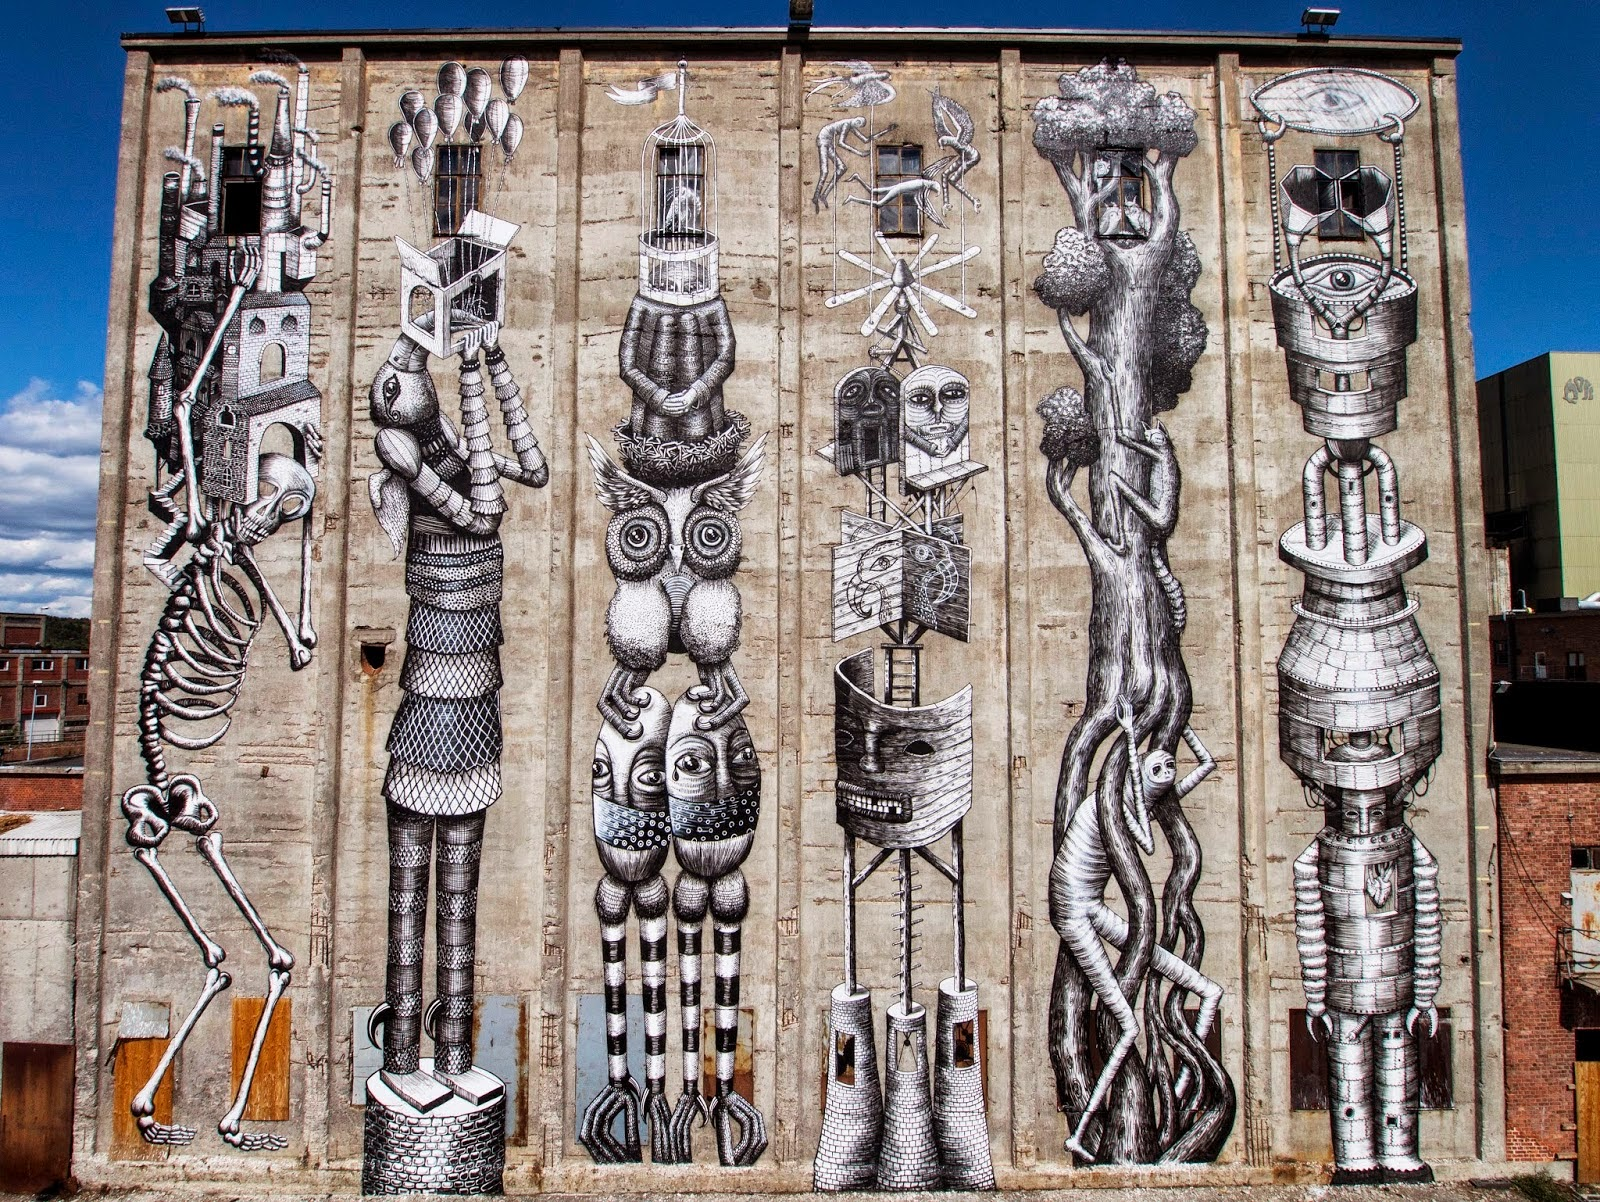 Phlegm was recently in Norway where he spent a few days working on this new piece somewhere in the city of Moss for the Urban Samtidskunst Project.